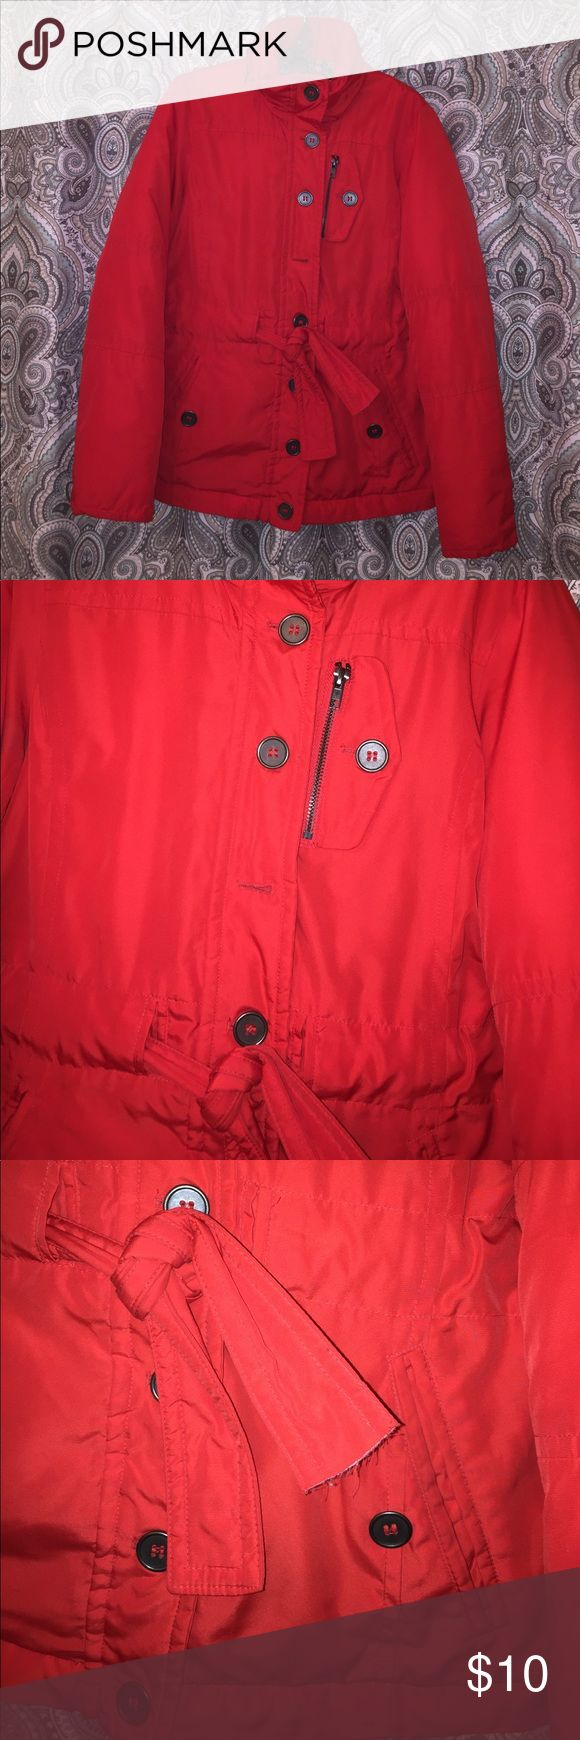 Bright orange jacket Water resistant coat, buttons up but is missing a button right in the middle. Has a zipper across the back of the neck with a hidden hood inside. The belt that ties around the waist, I cut it for some reason so the end of one side is frayed unfortunately. I would still wear it, but it is too small for me. There are secret pockets hidden on the inside, two regular pockets on the outside and another tiny zipper pocket by the chest. ana Jackets & Coats